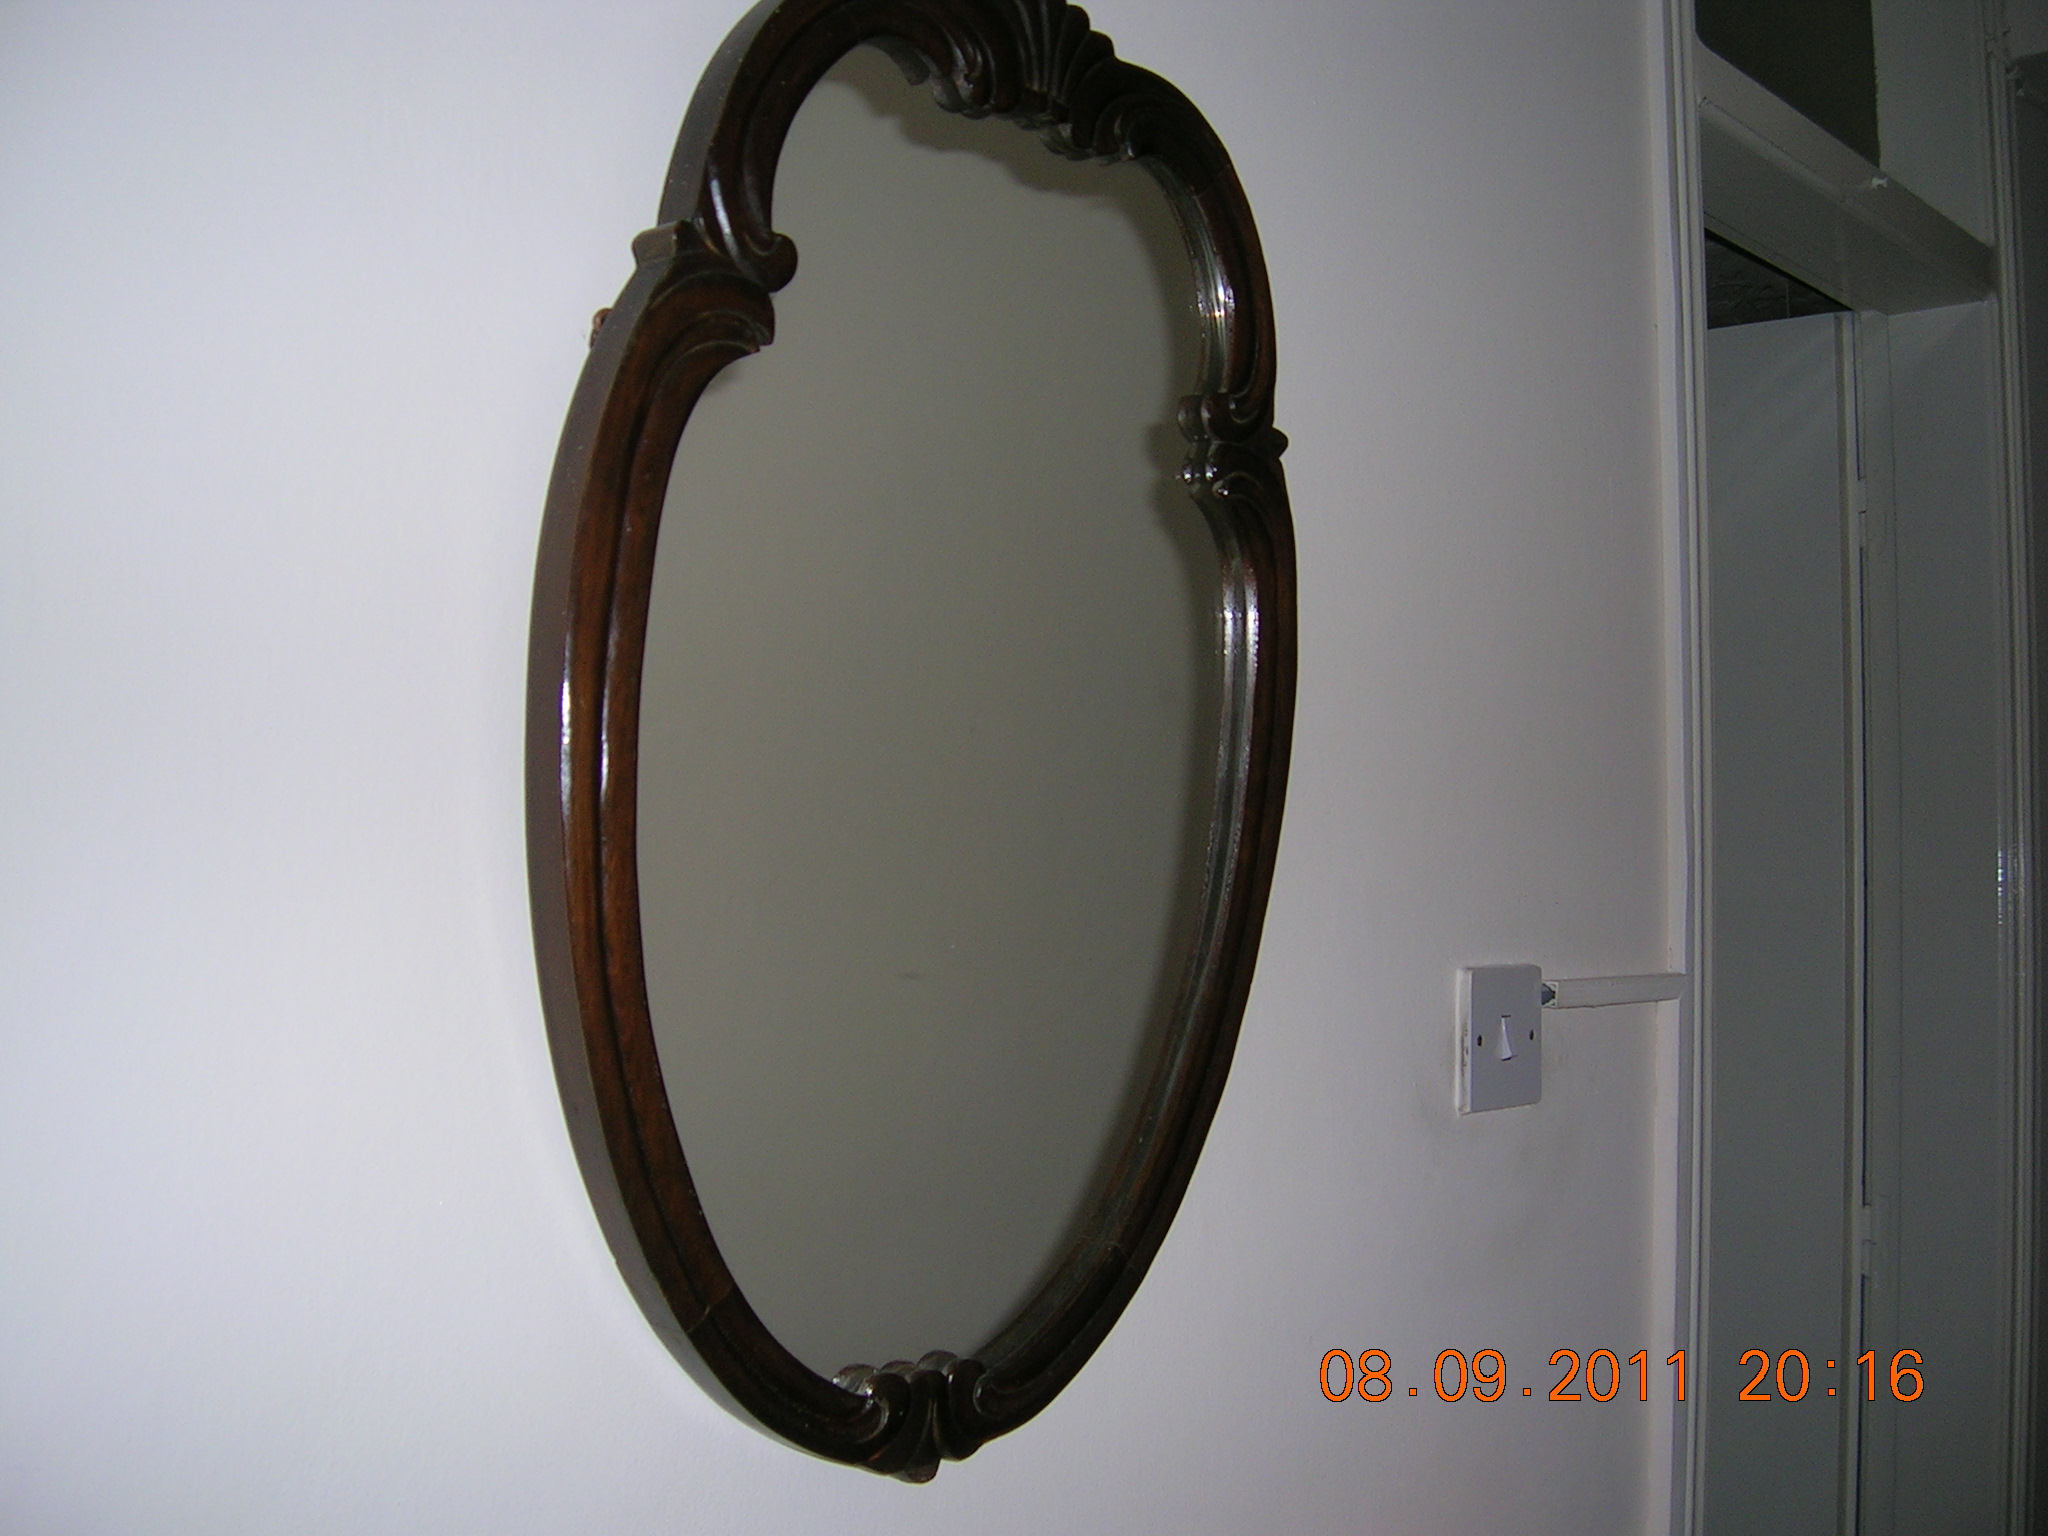 Magic mirror on the wall anastasia in the year 2012 and the era of advanced technologies very young girls no longer trust their mirror or what their friends and family tell them amipublicfo Choice Image